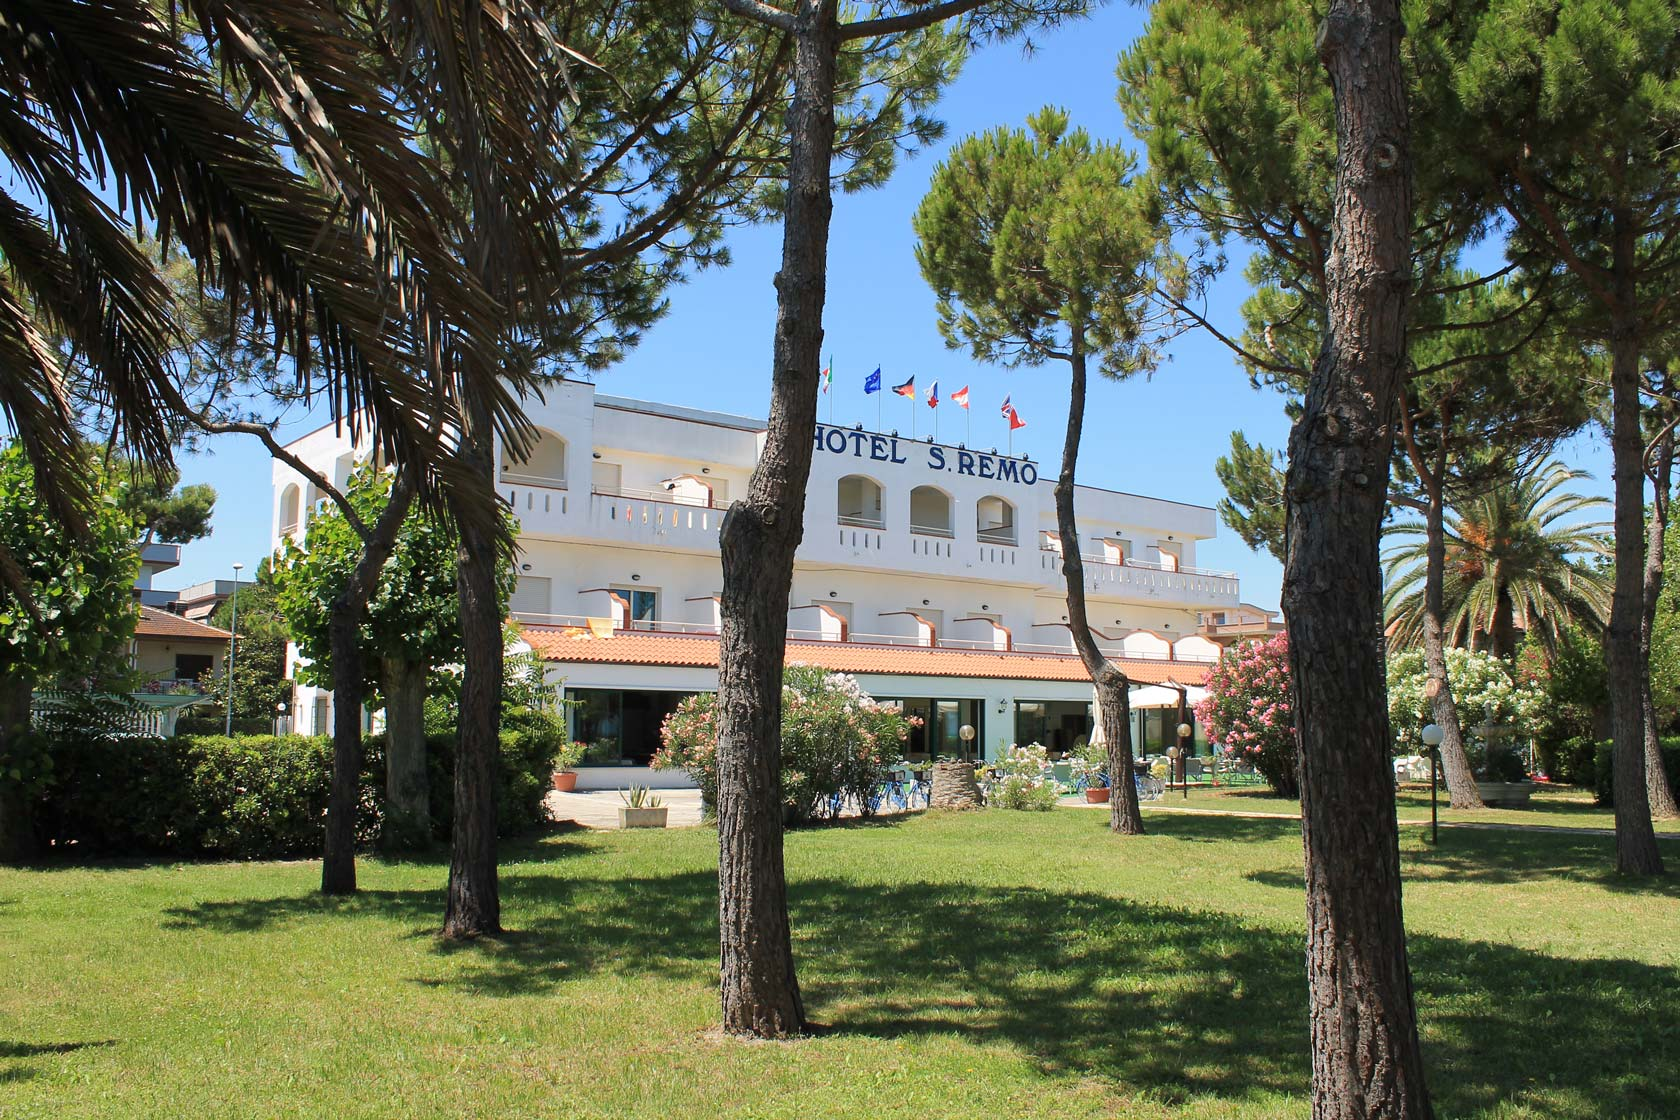 Hotel San Remo - Under the shade of pine and palm trees